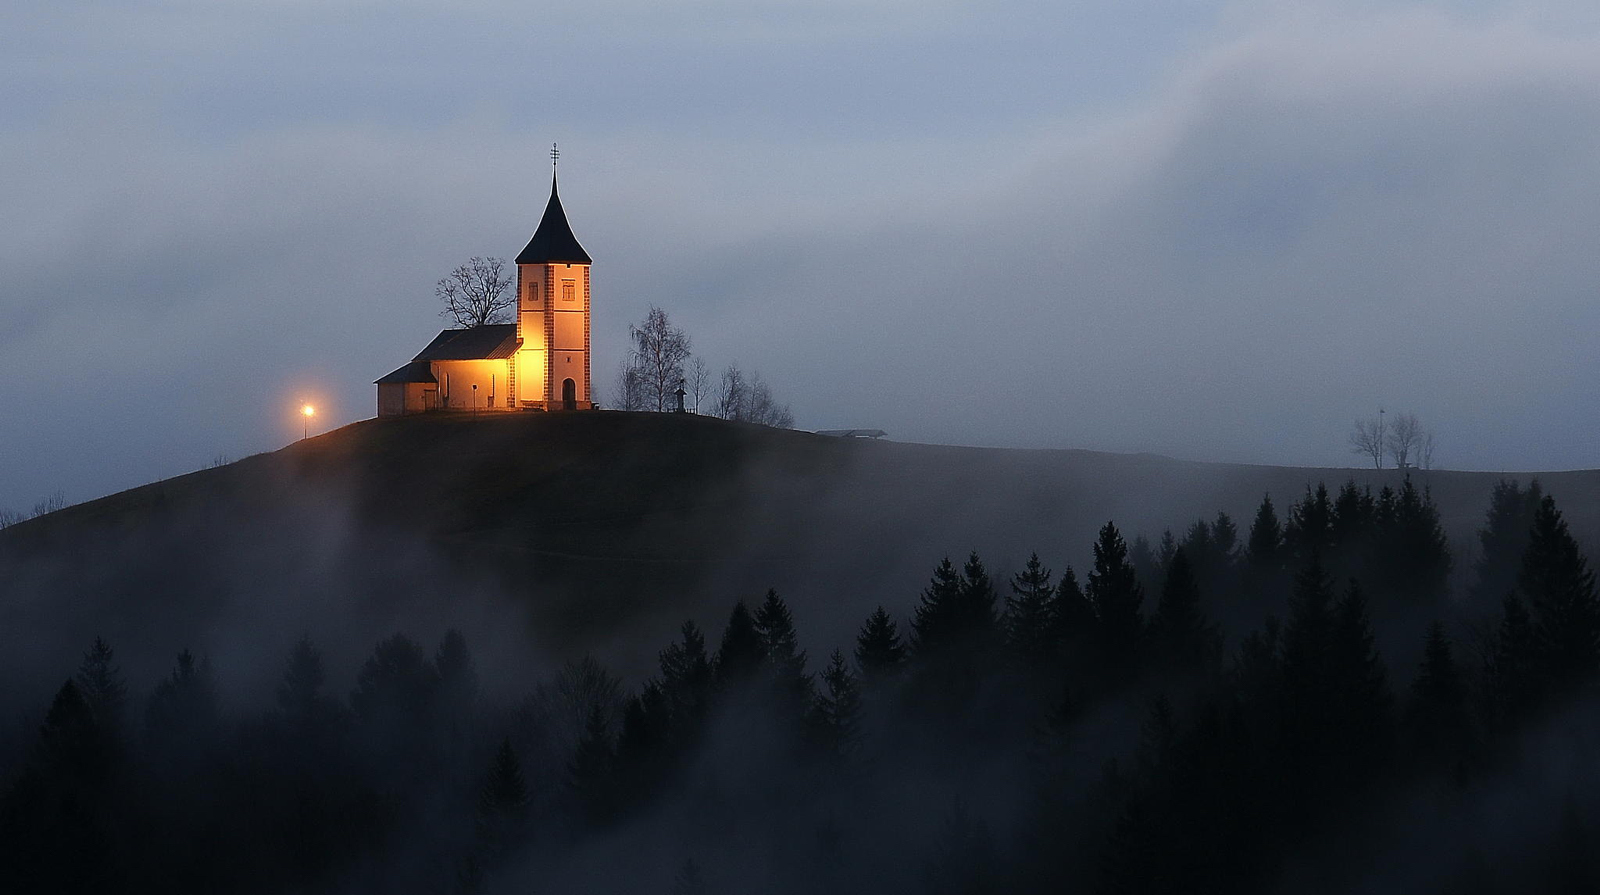 25 Beautiful, Solitary Churches Tucked Away in Nature